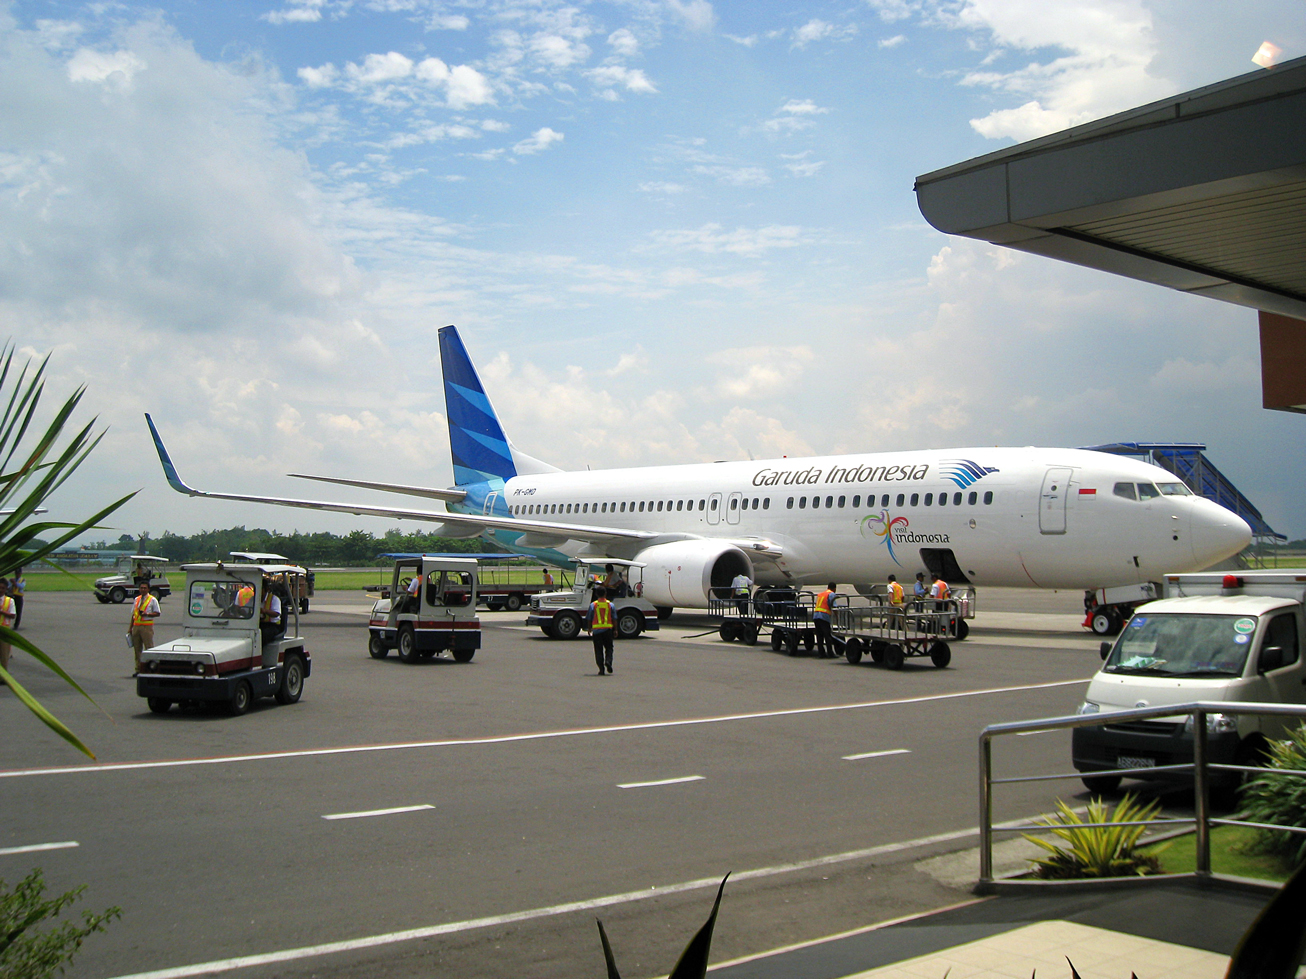 https://upload.wikimedia.org/wikipedia/commons/d/dd/Garuda_Indonesia_New_Livery.jpg